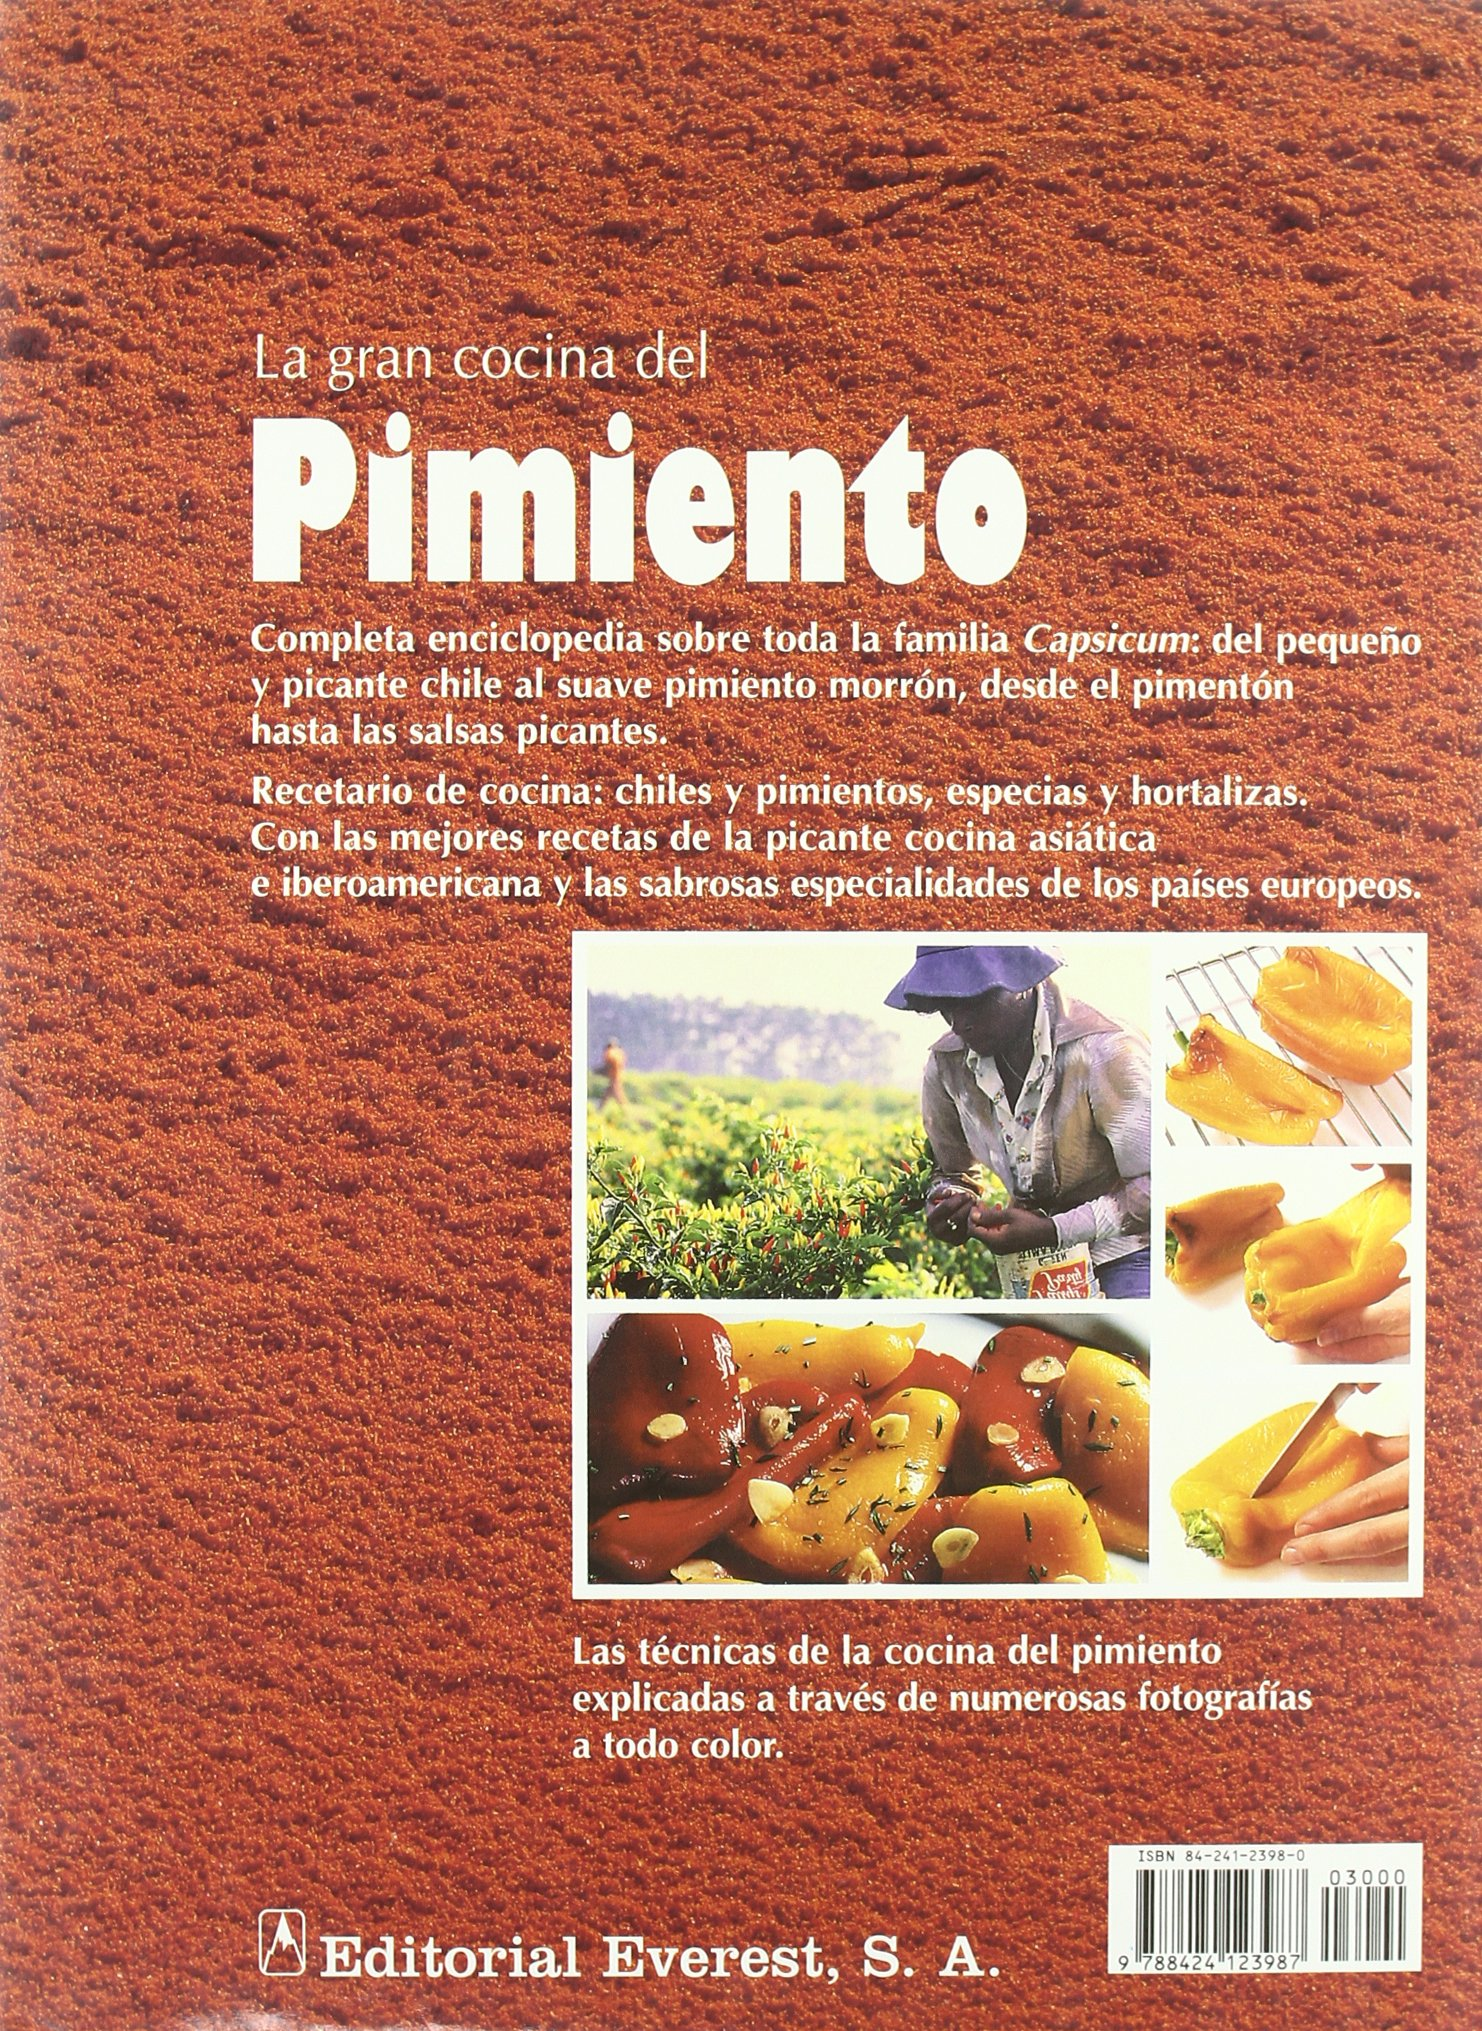 La Gran Cocina del Pimiento (Spanish Edition): Christian Teubner: 9788424123987: Amazon.com: Books